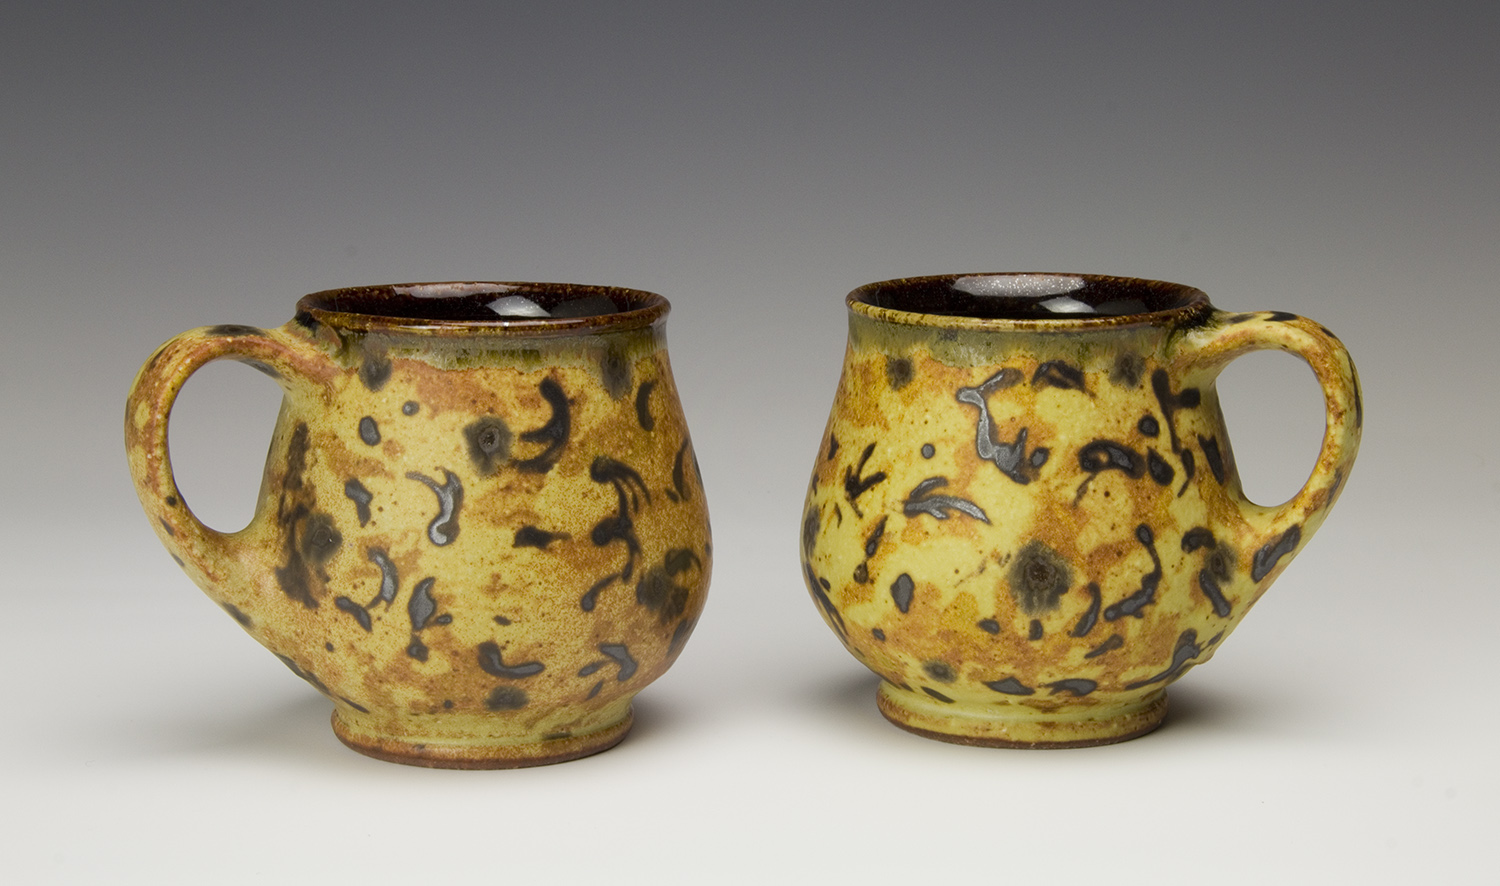 Mugs made by Bruce Gholson